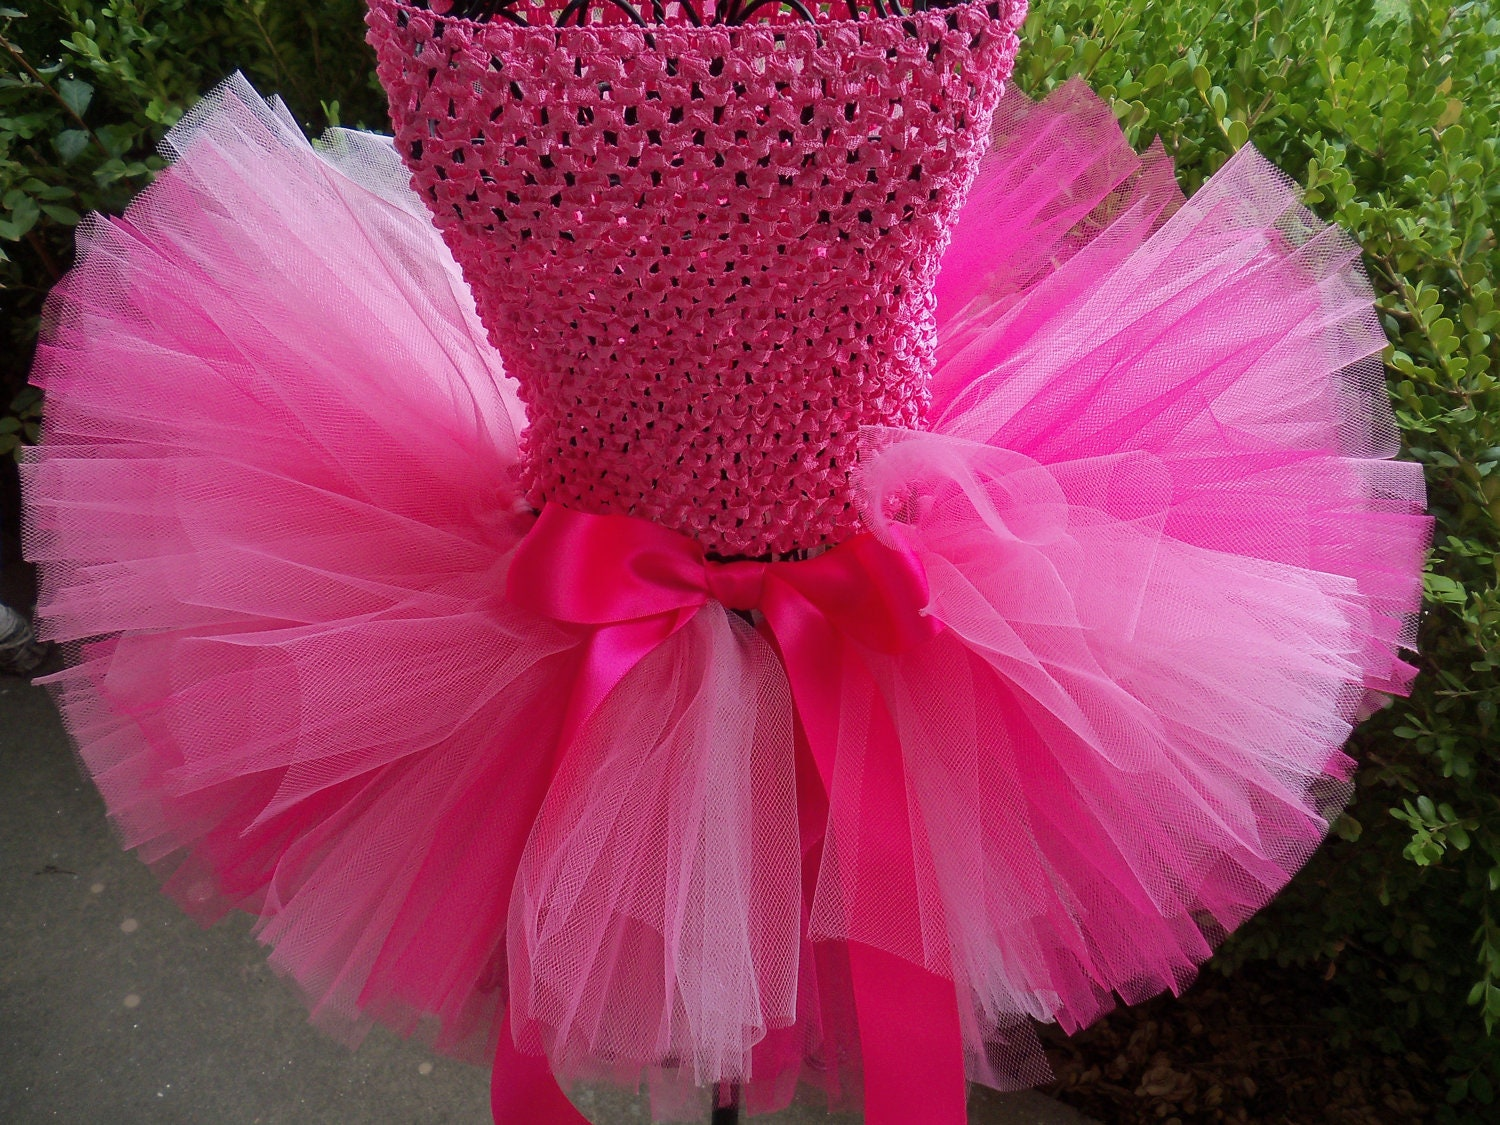 Flamingo Halloween Costume Pattern http://globalpaynet.com/demo/flamingo-costume